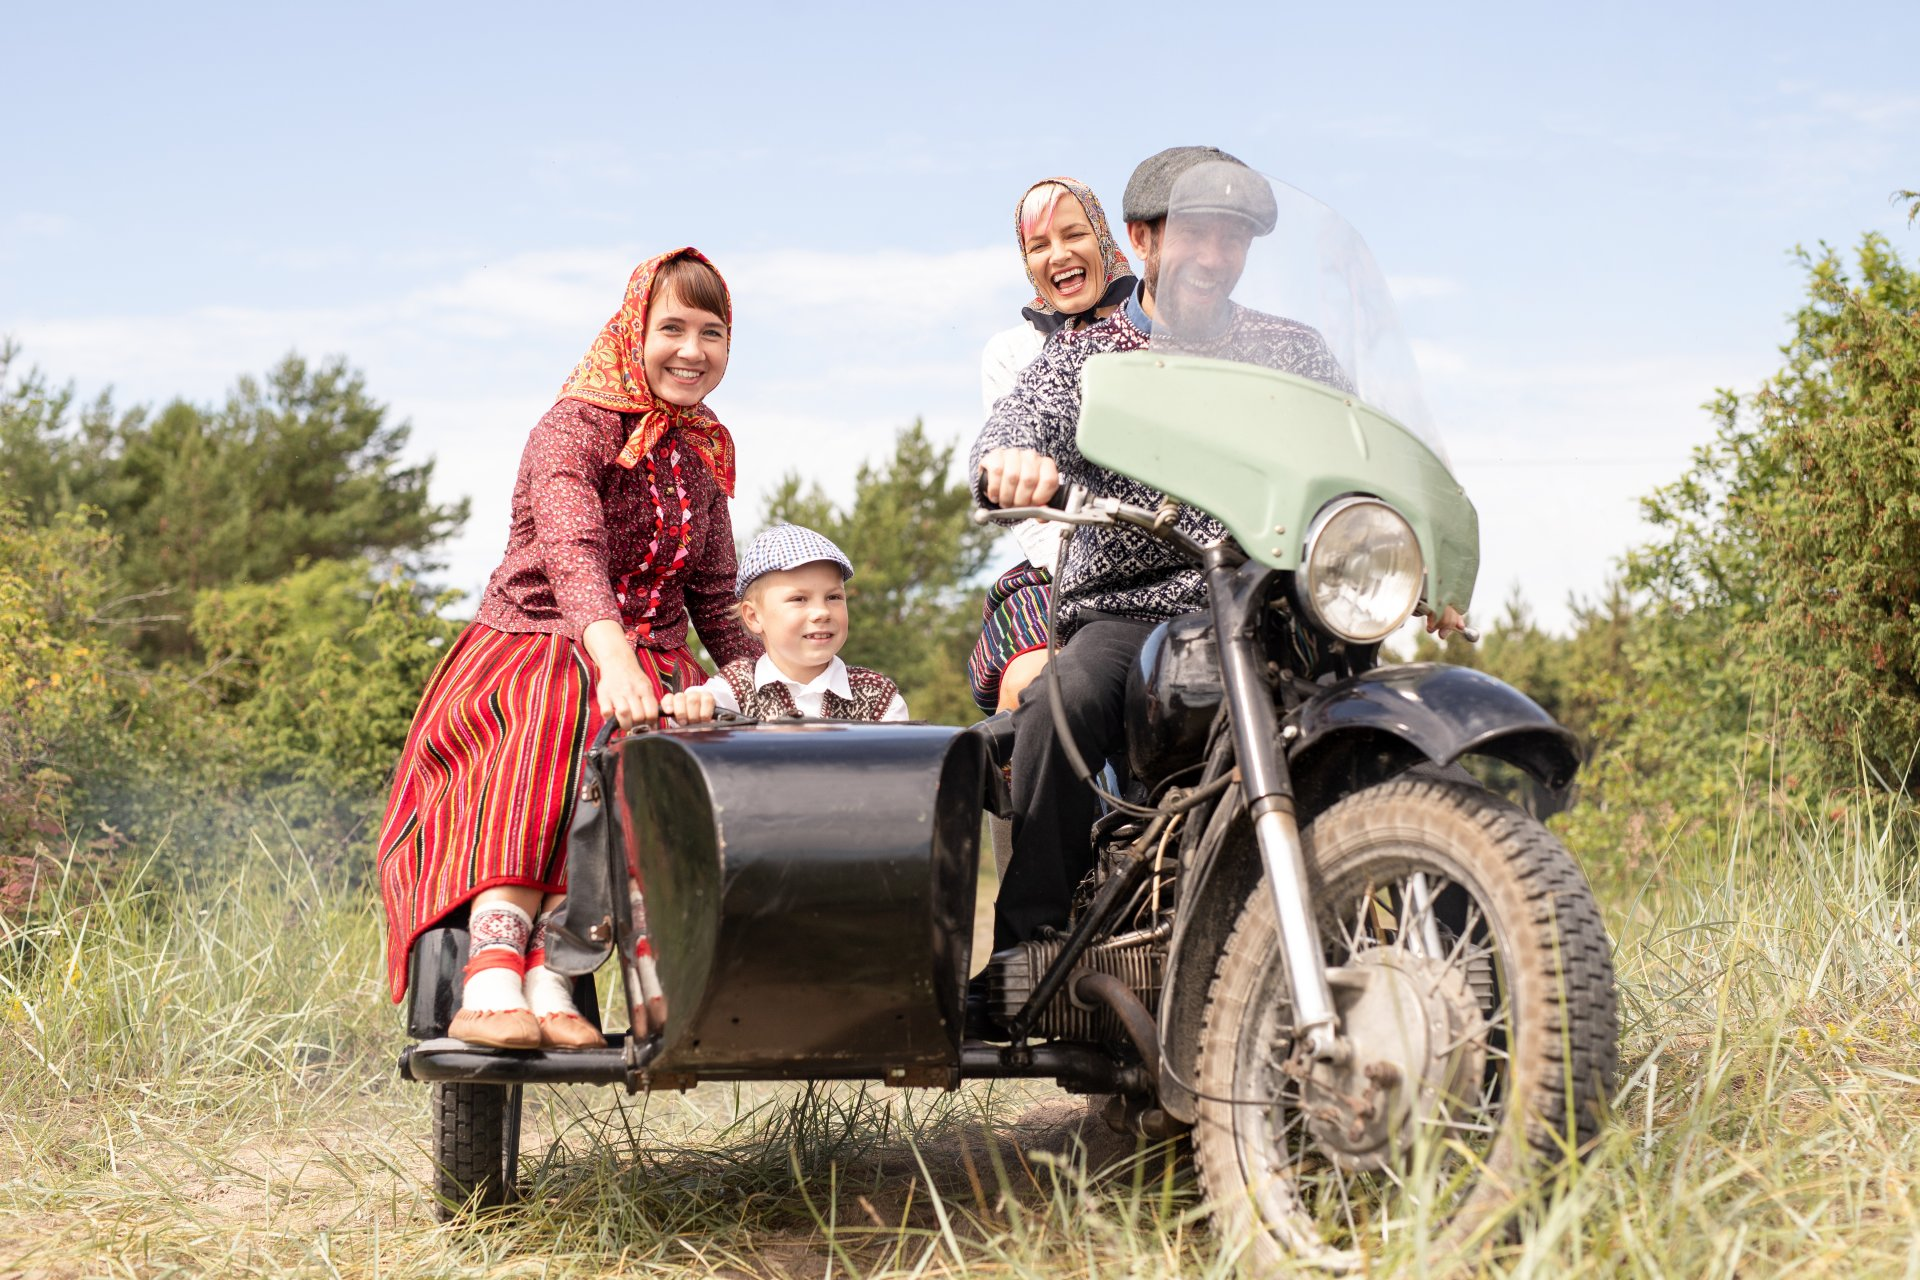 Kihnu family on a motorcycle ride